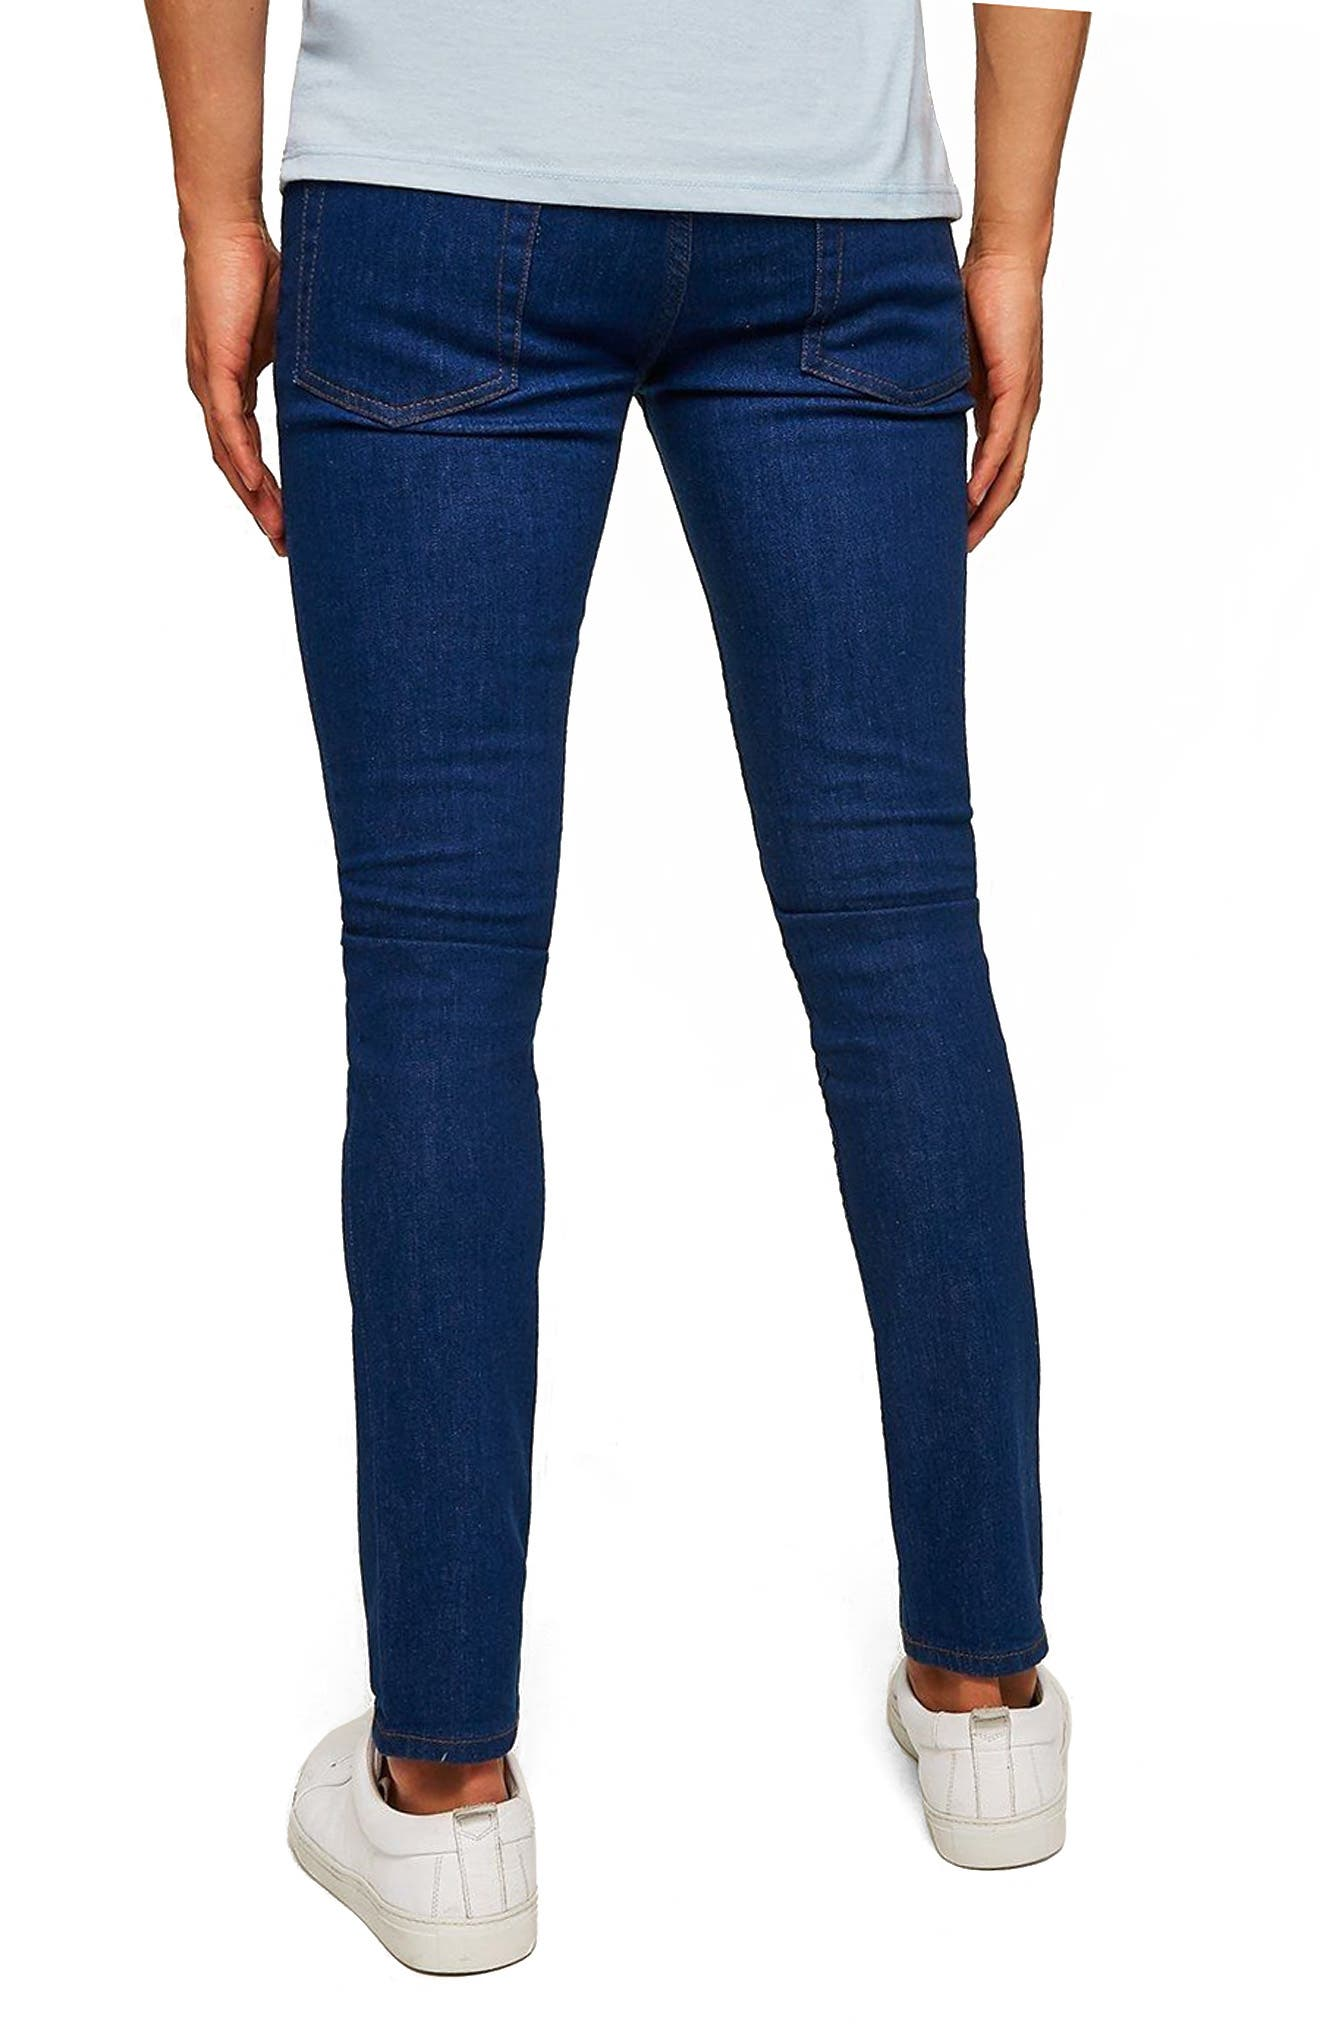 Stretch Skinny Fit Jeans,                             Alternate thumbnail 2, color,                             400